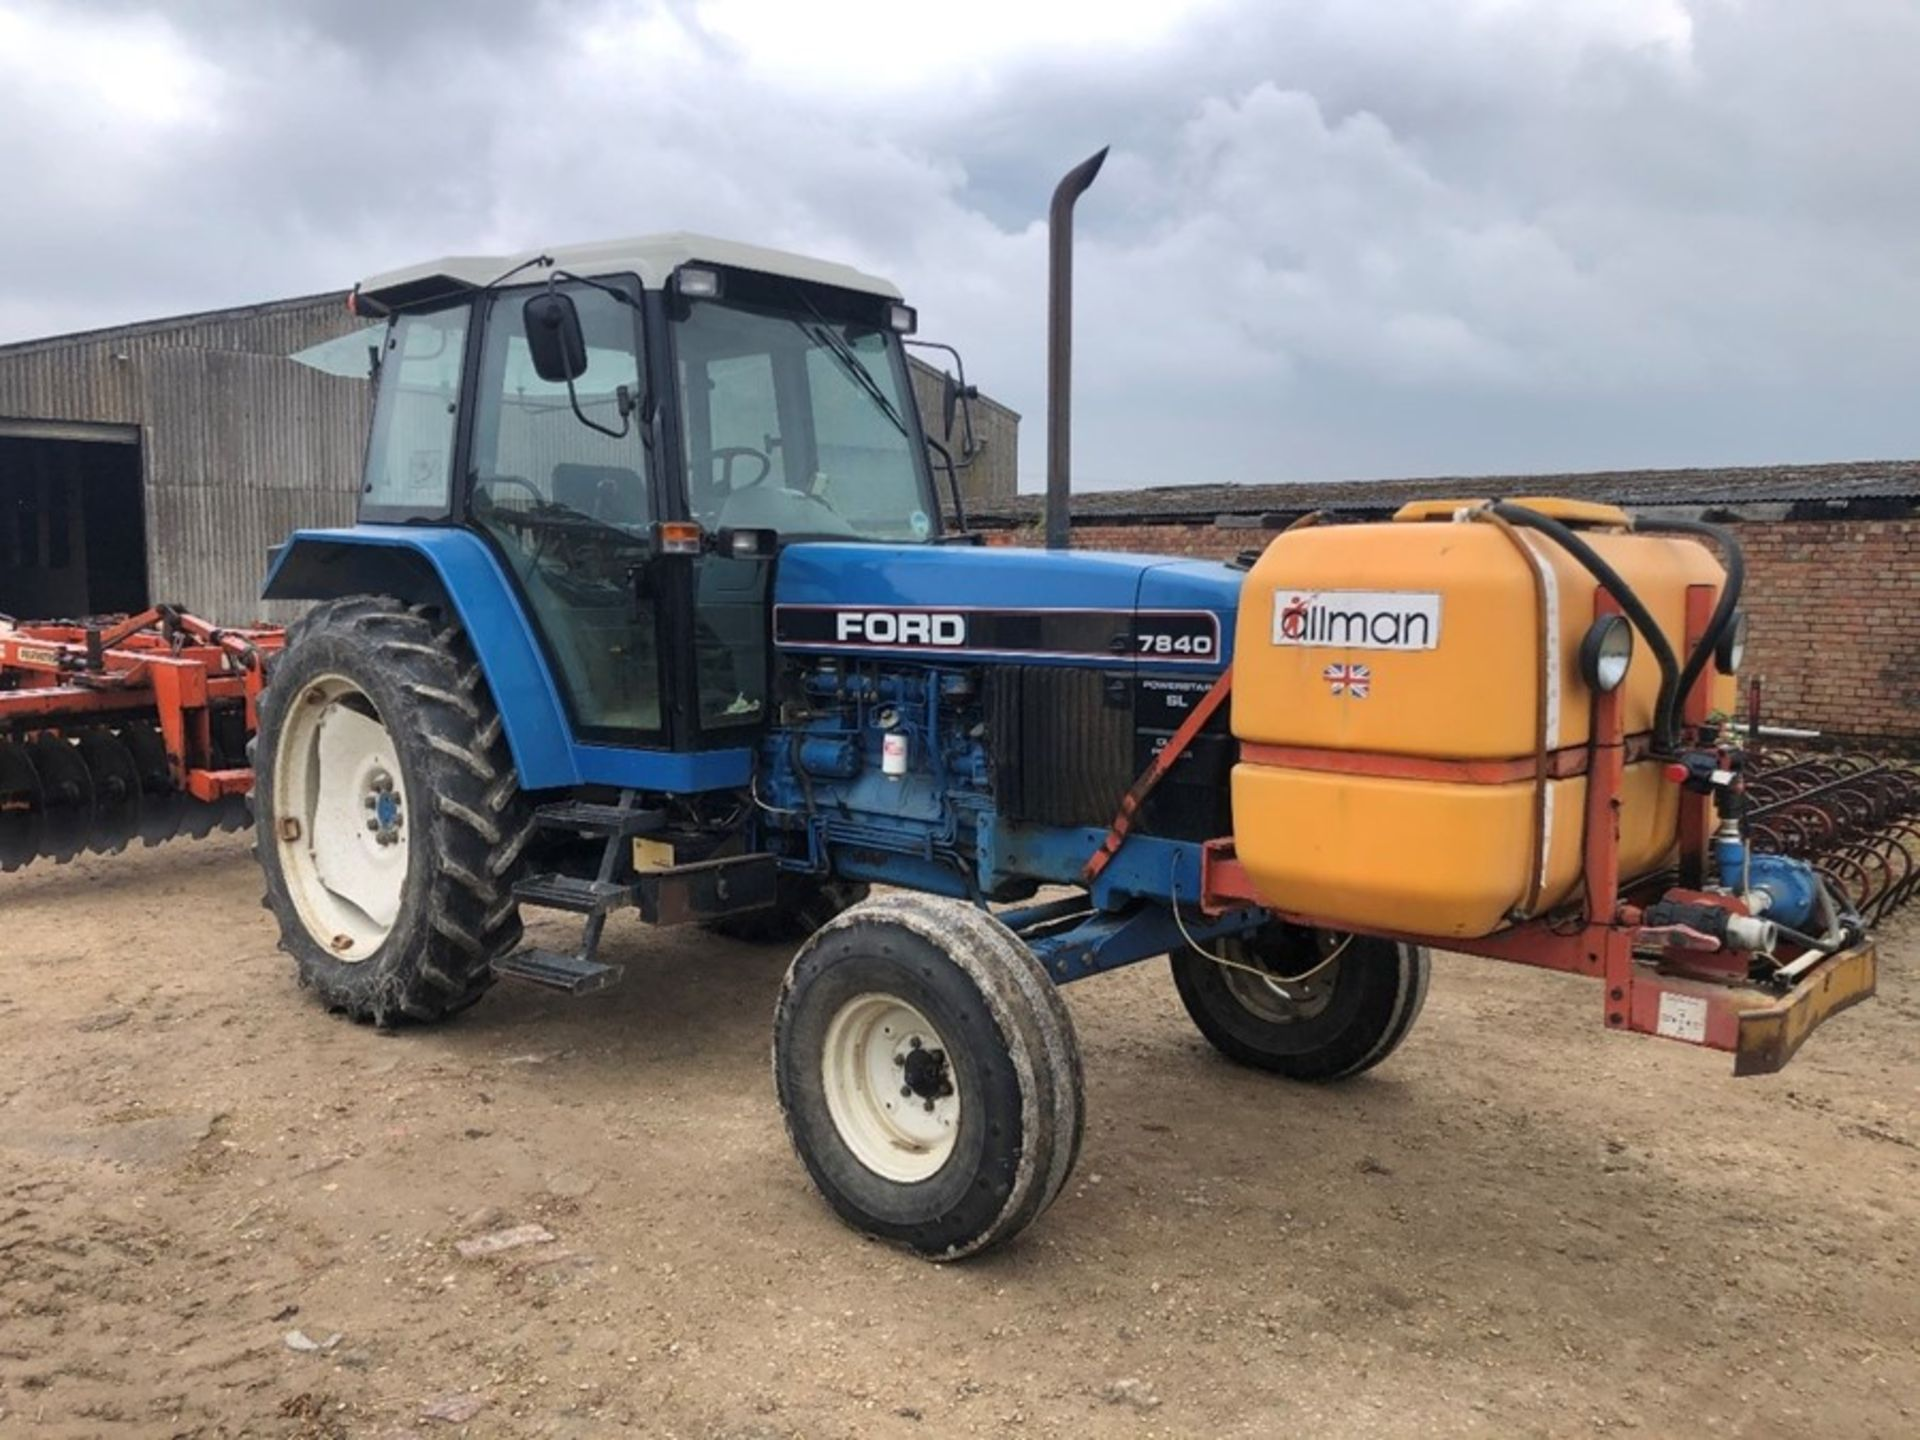 (94) Ford 7840 Powerstar SL 2wd tractor, 4,551 hours, dual power. air con, Reg L56 UVL, Rear 13.6 - Image 8 of 11